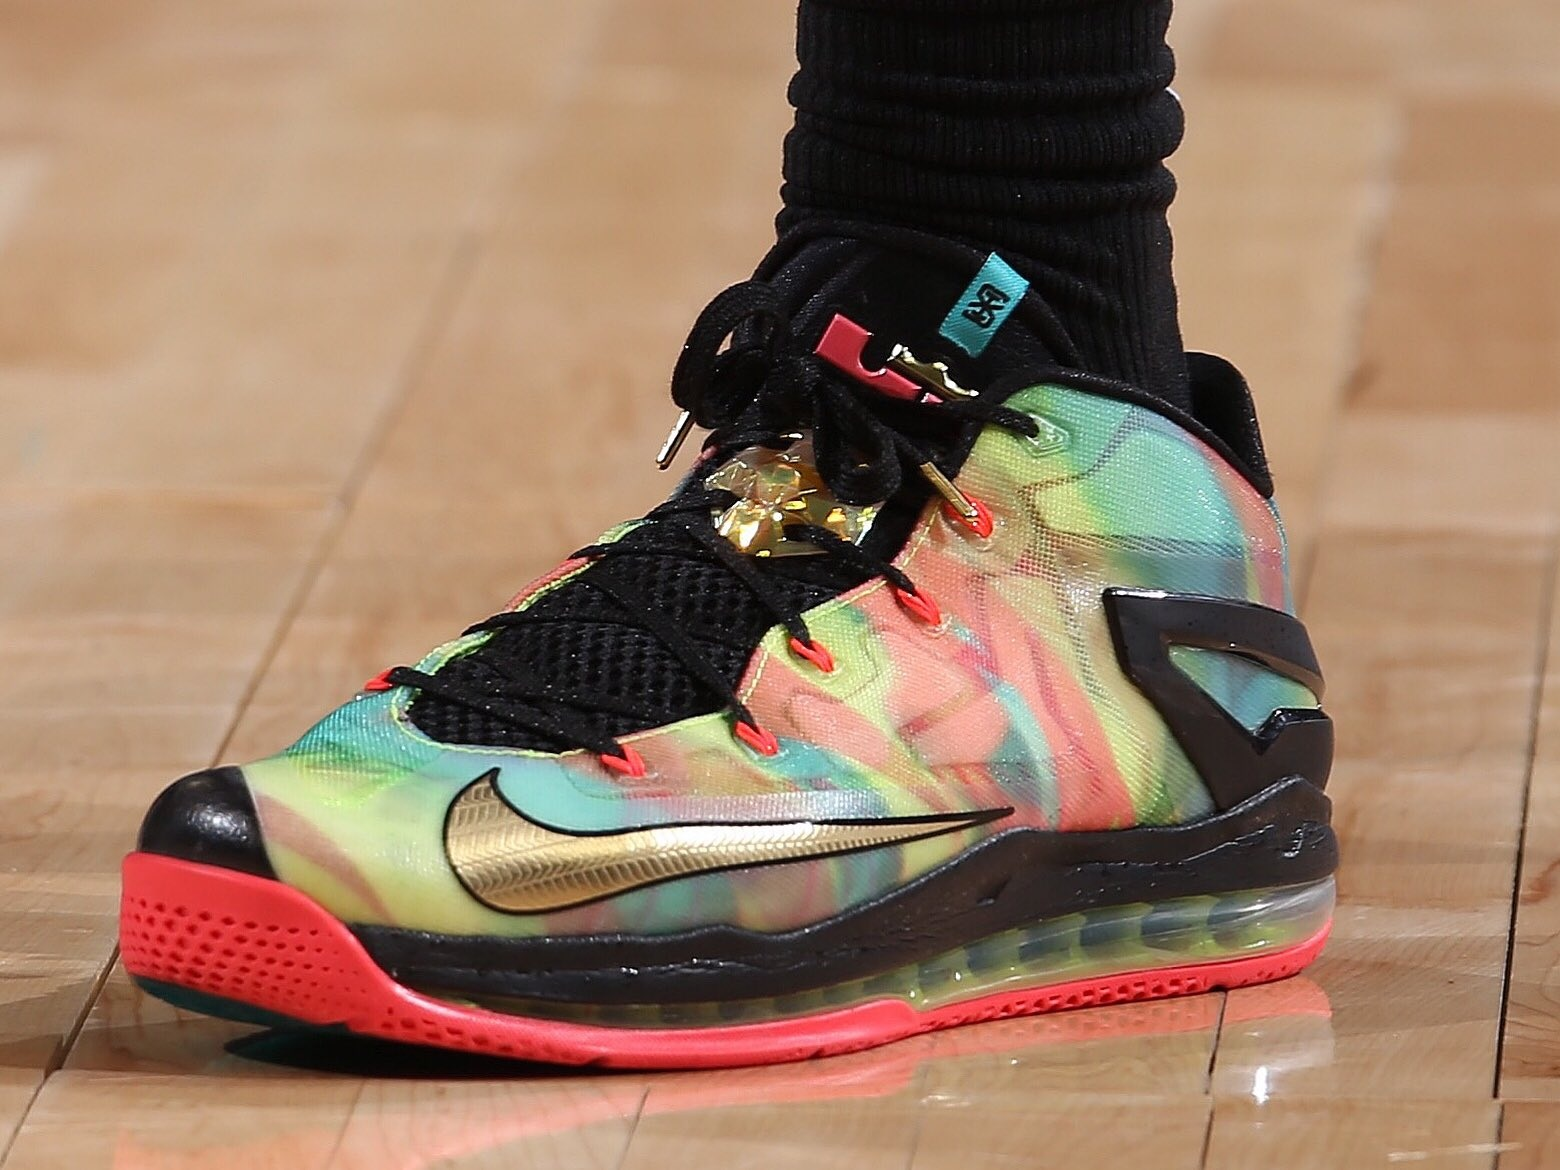 Montrezl Harrell wins best kicks of the night with the Nike Lebron 11 Low SE 'Multi-Color' -